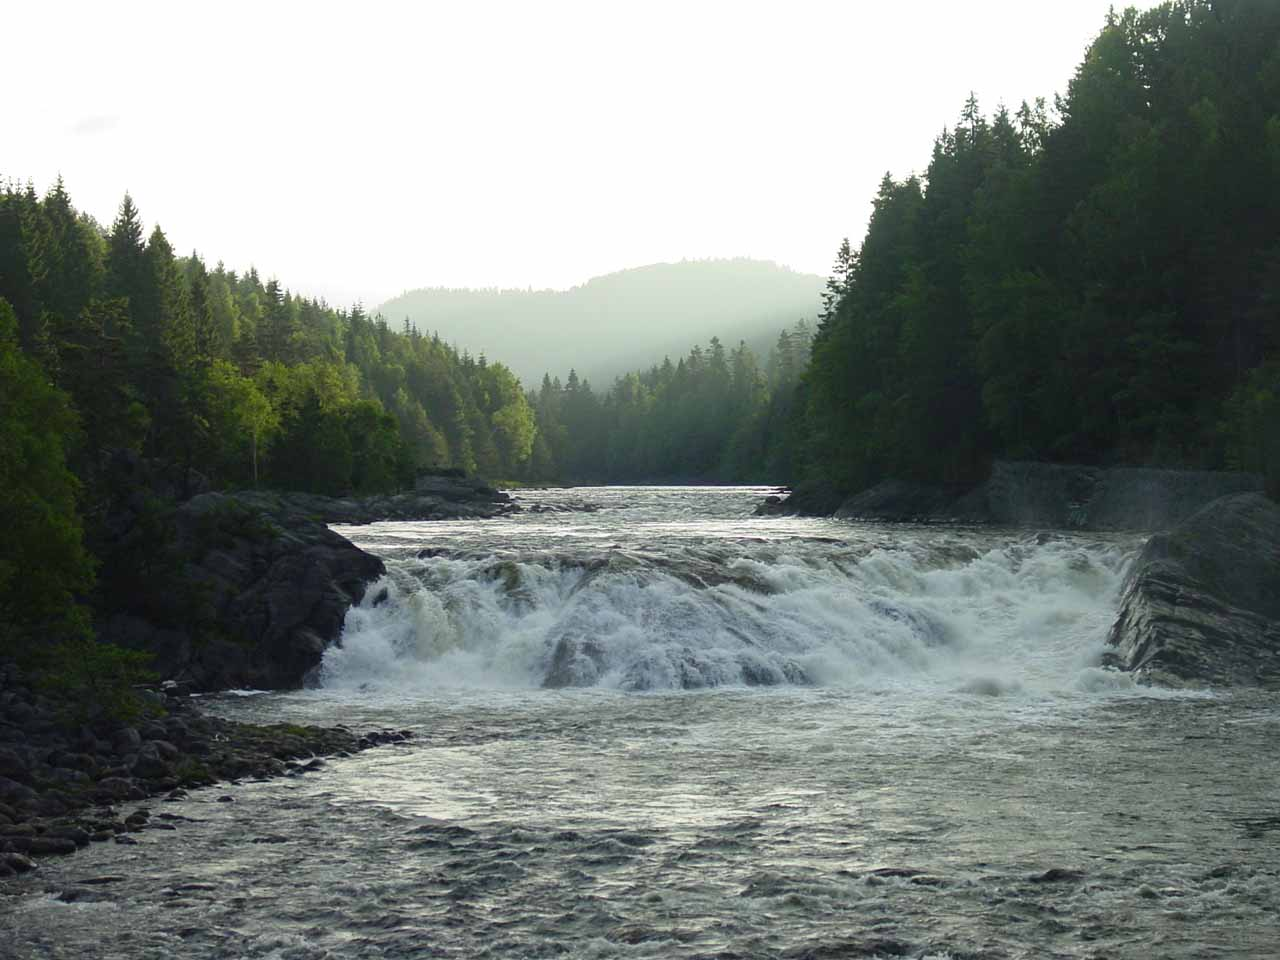 While I was looking for Flakkefossen, I found this waterfall called Teinefossen, which was on the river Tøvdalselva